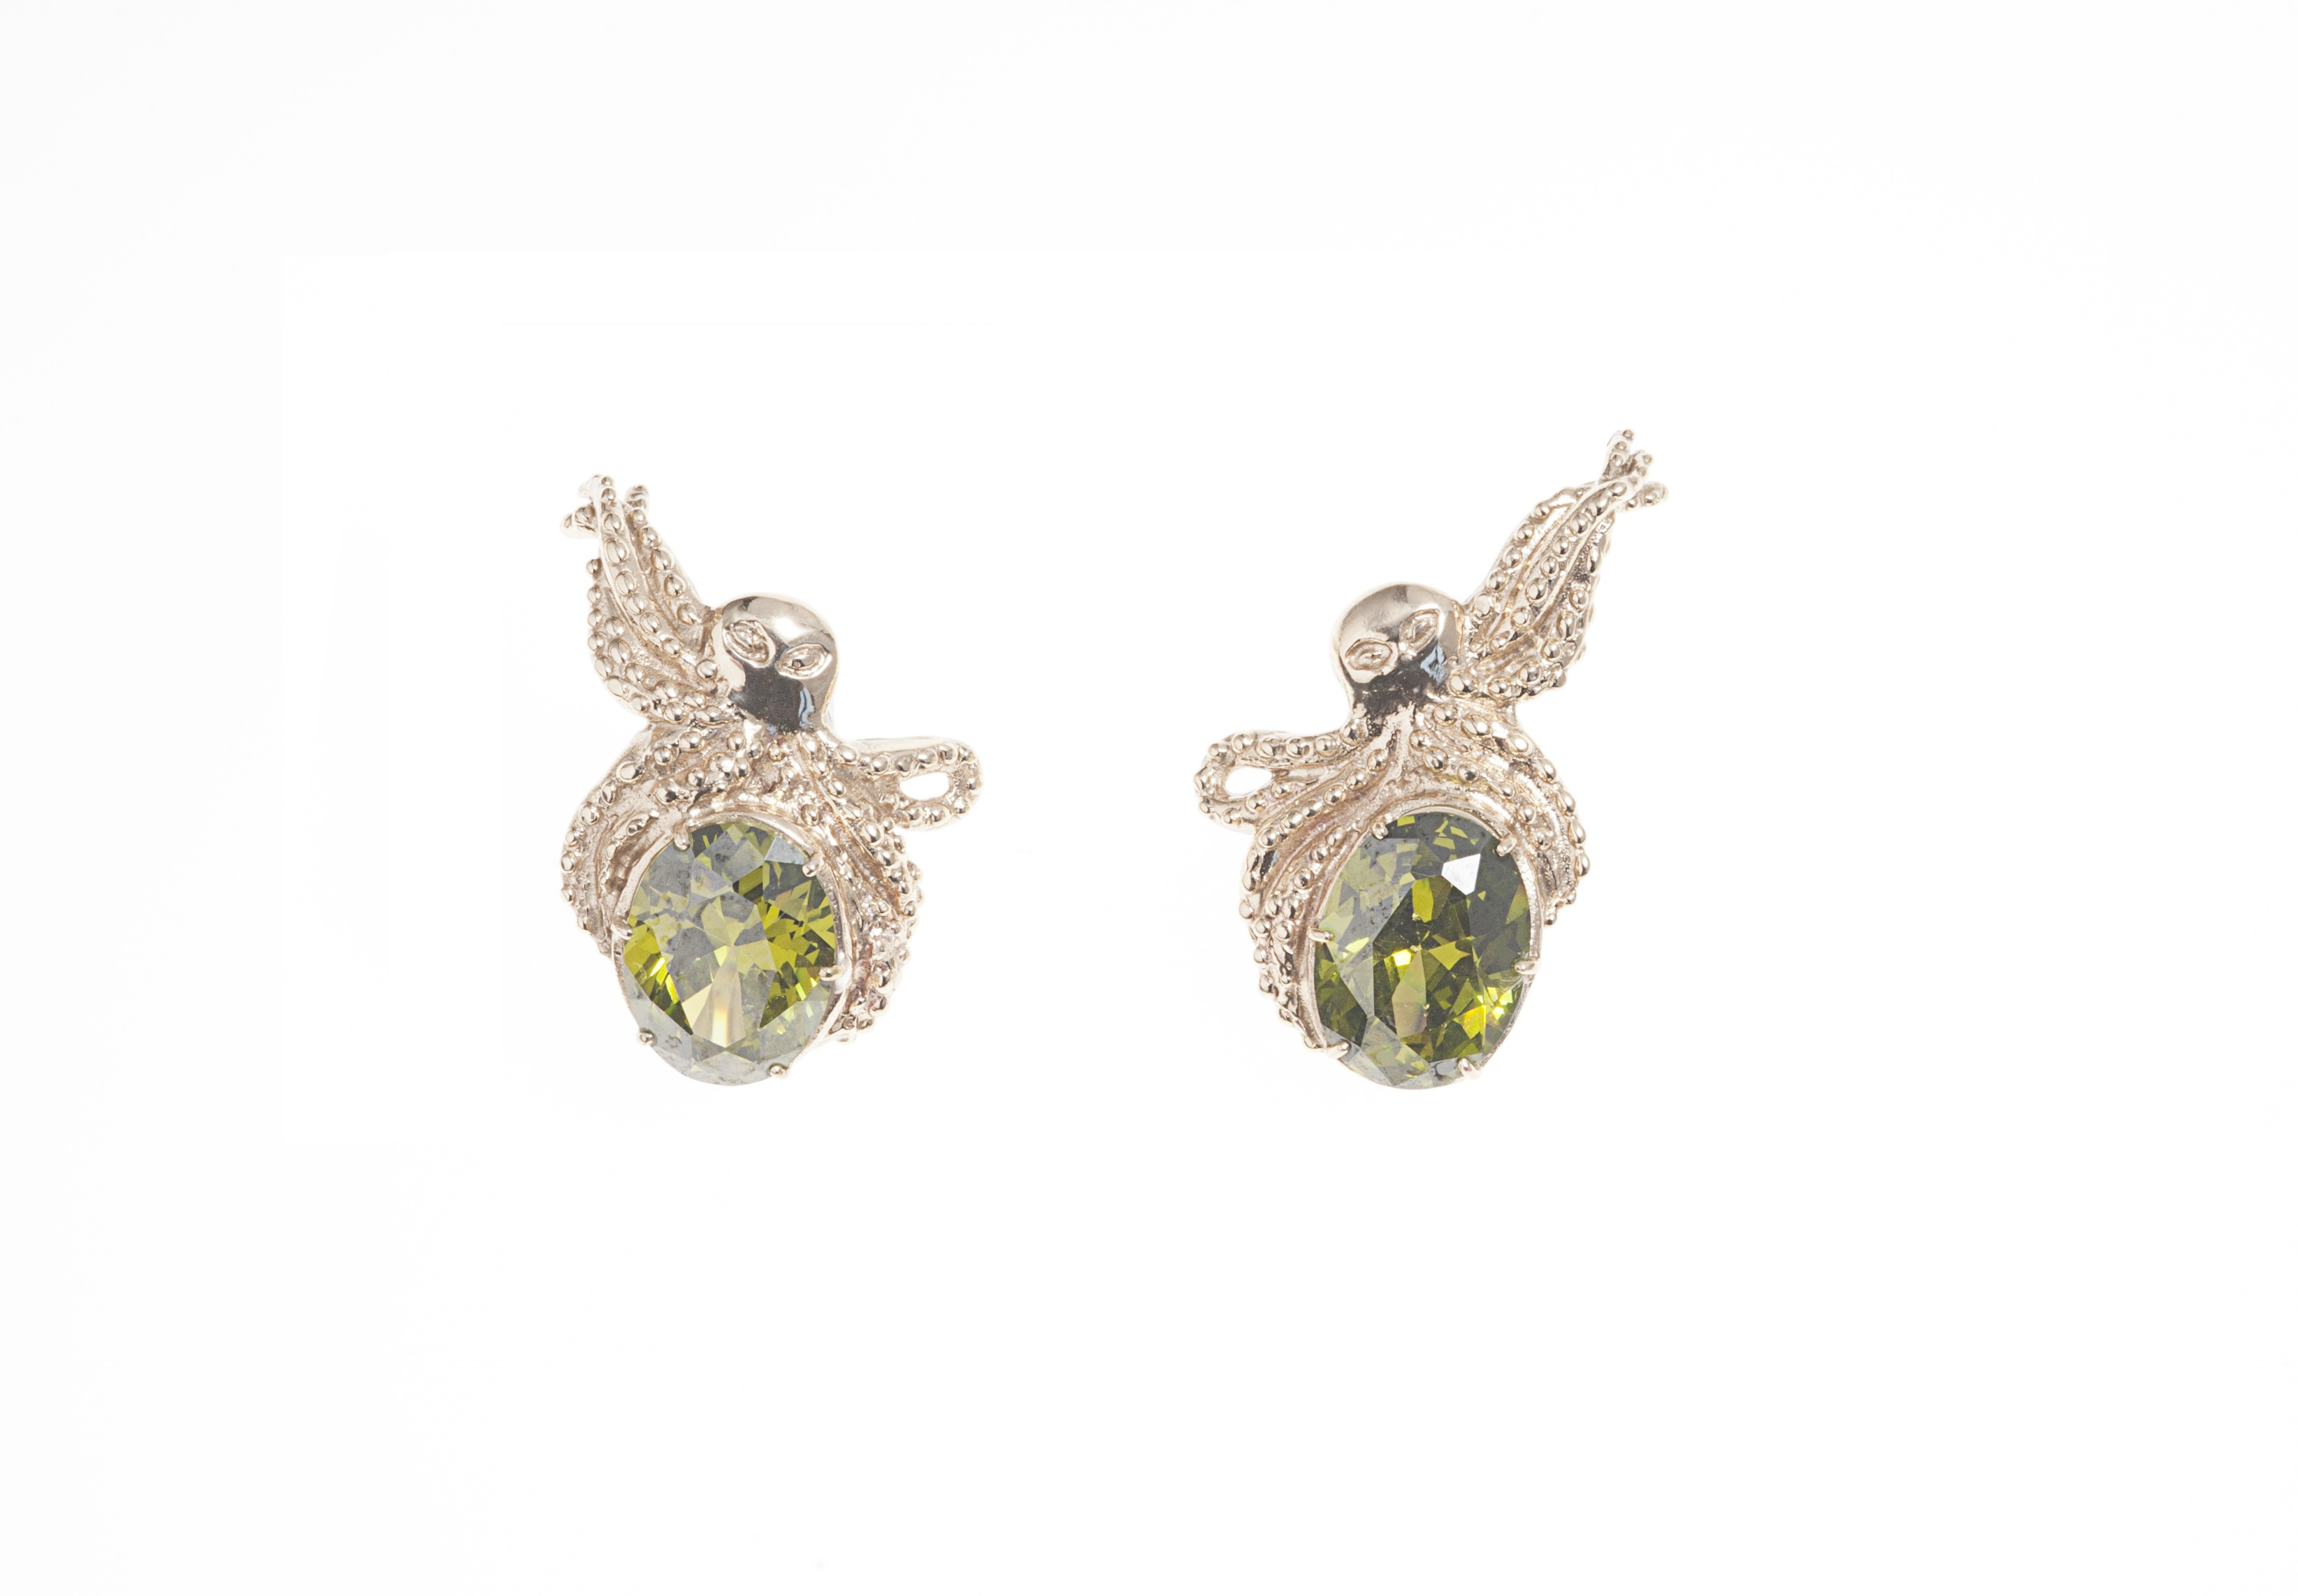 Bronze octopus earrings with green zircon